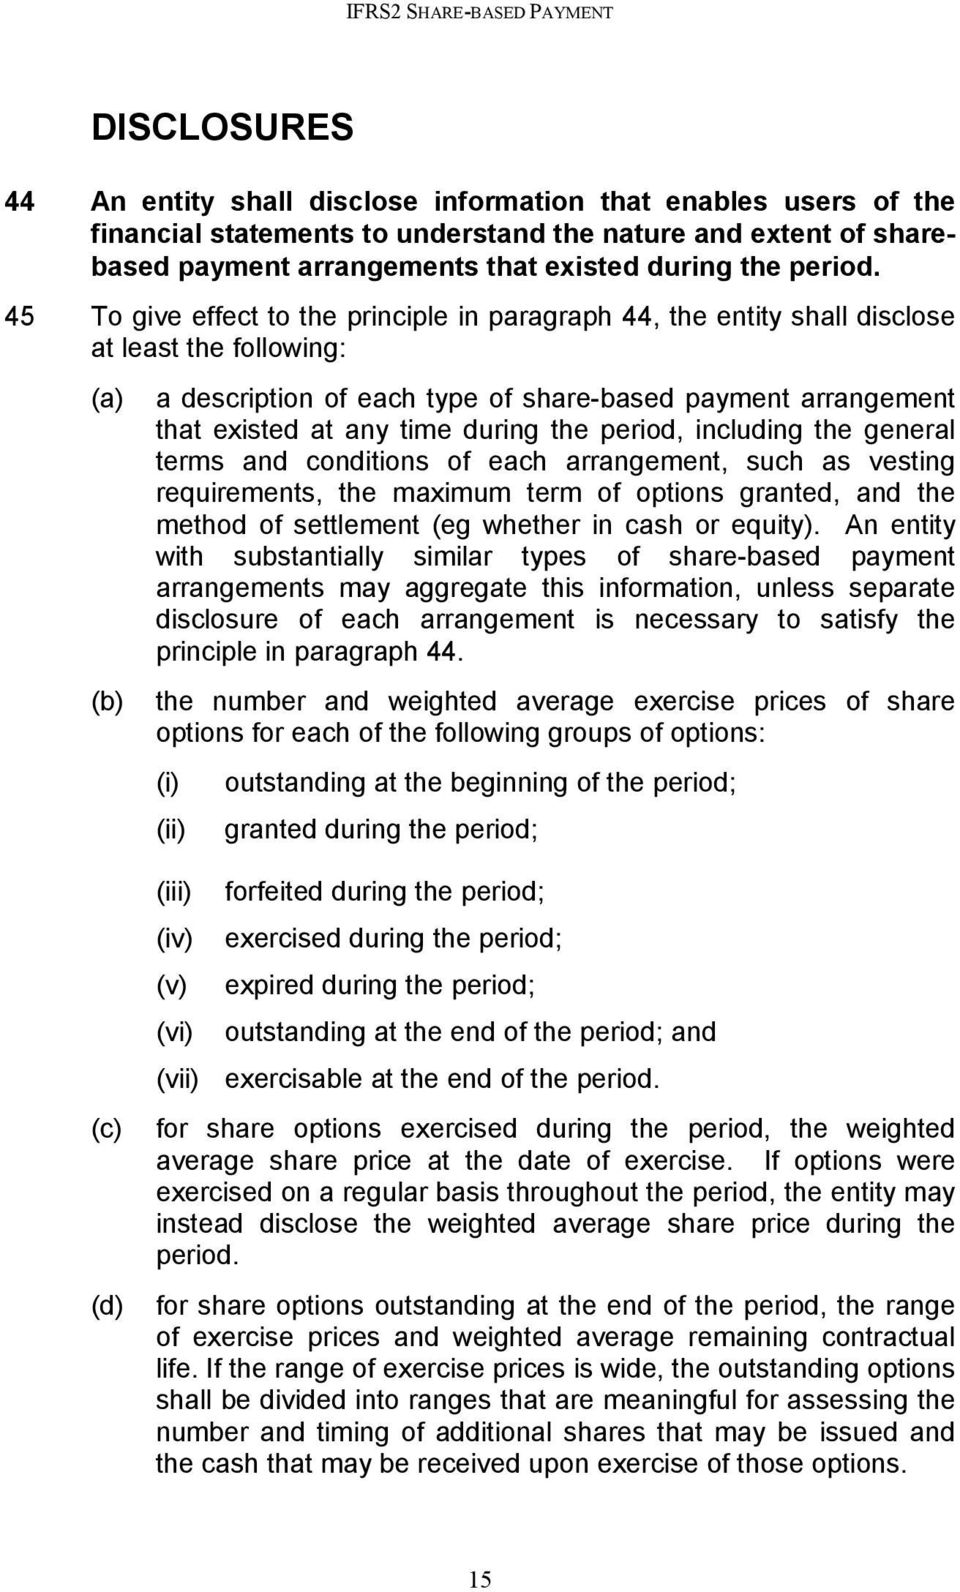 45 To give effect to the principle in paragraph 44, the entity shall disclose at least the following: (a) a description of each type of share-based payment arrangement that existed at any time during